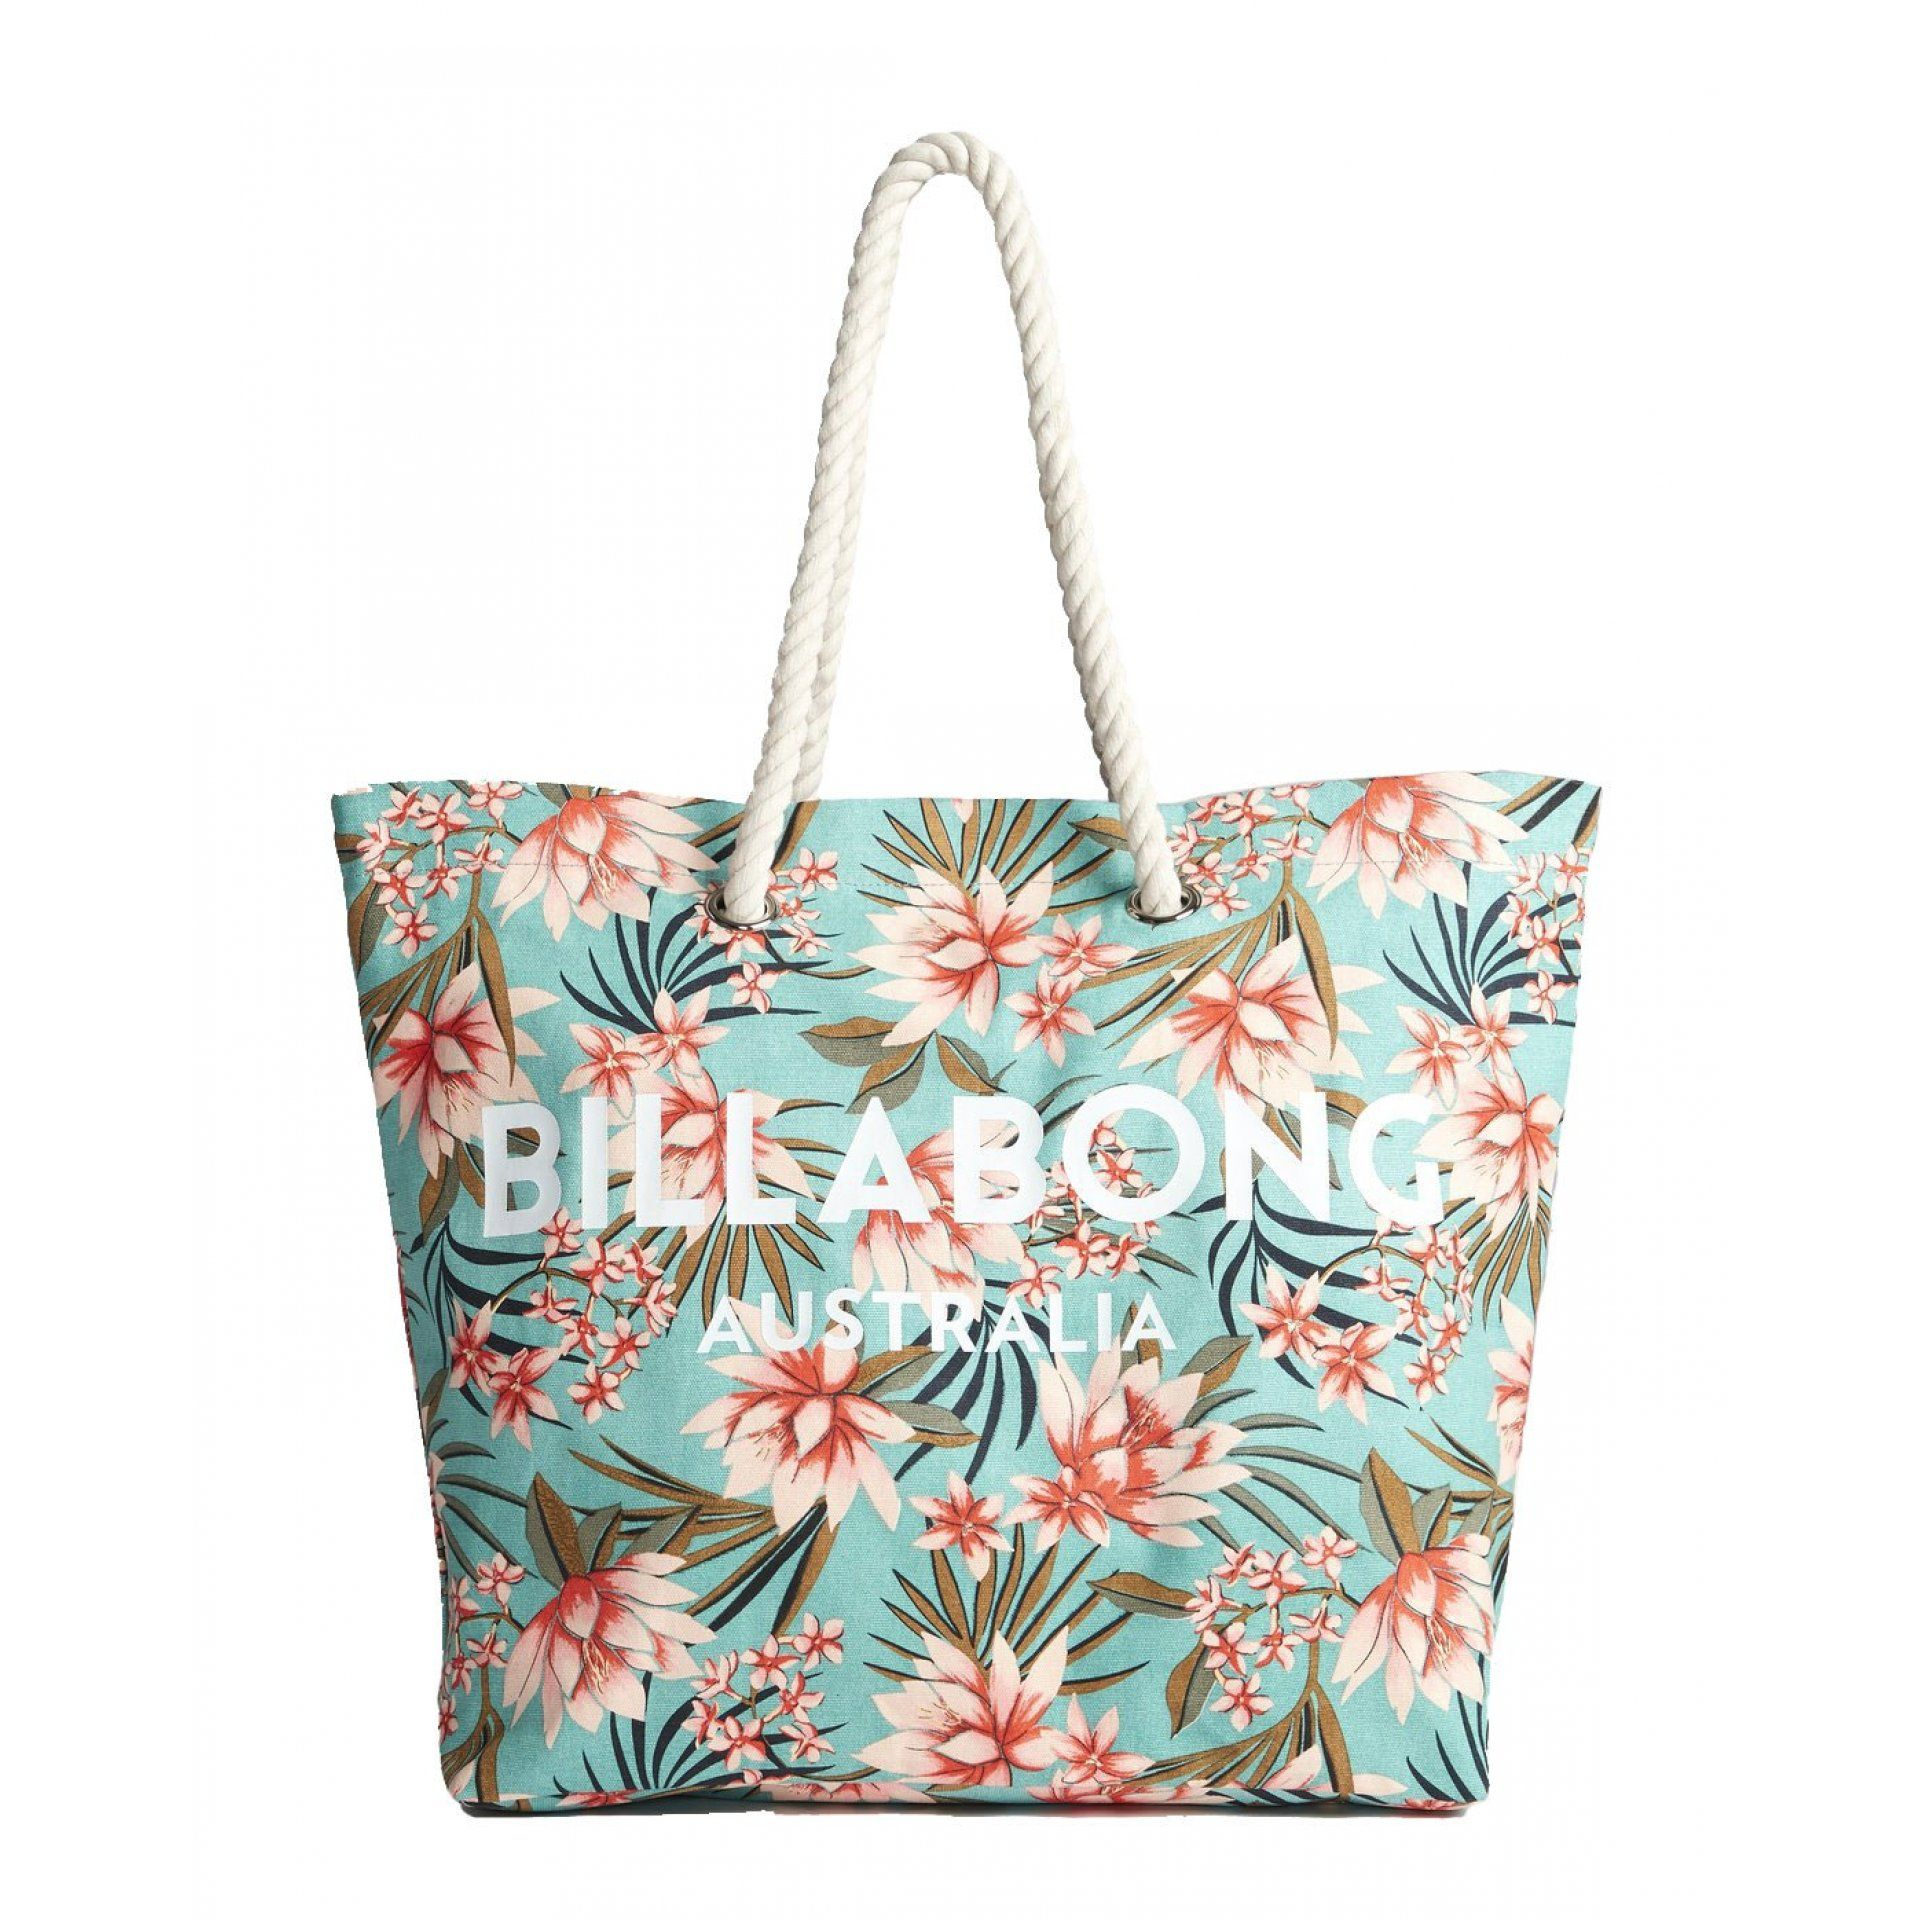 TOREBKA BILLABONG ESSENTIAL SEAFOAM 1208